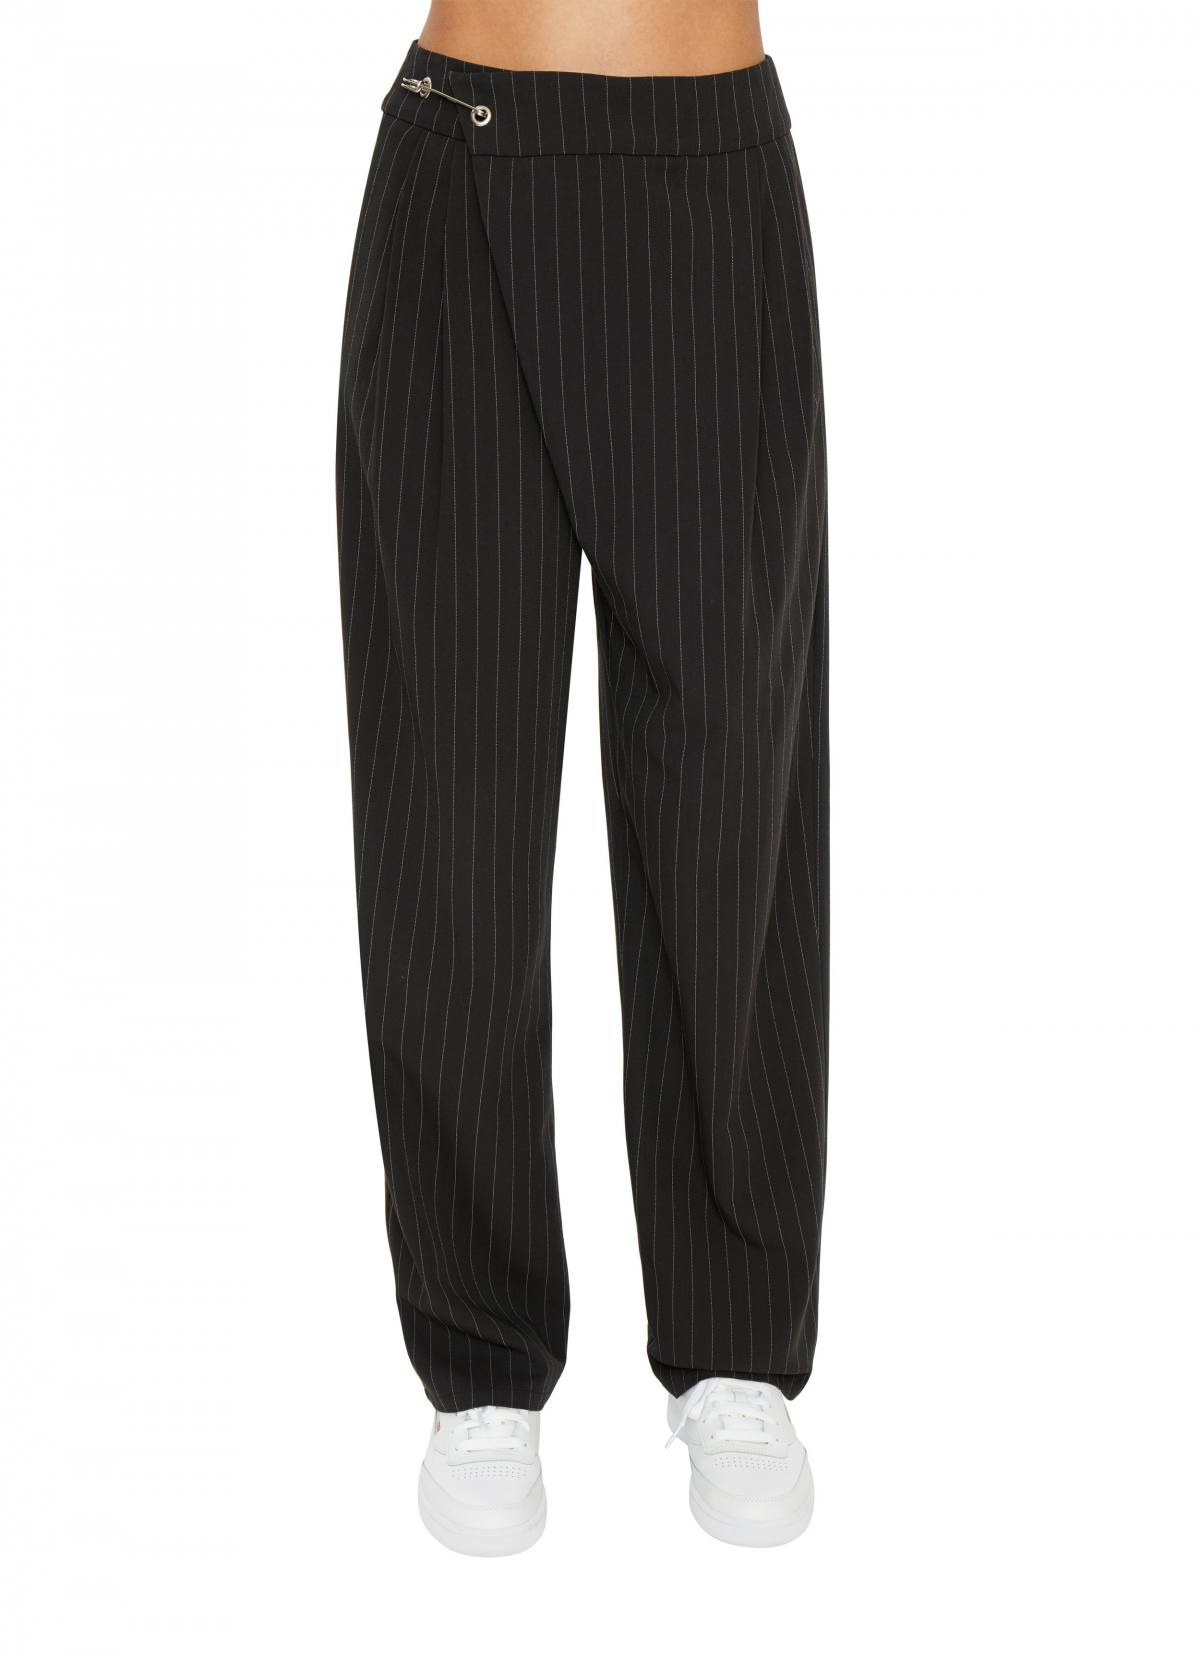 SAFETY PIN TROUSER by Danielle Guizio, available on danielleguiziony.com for $268 Kylie Jenner Pants SIMILAR PRODUCT